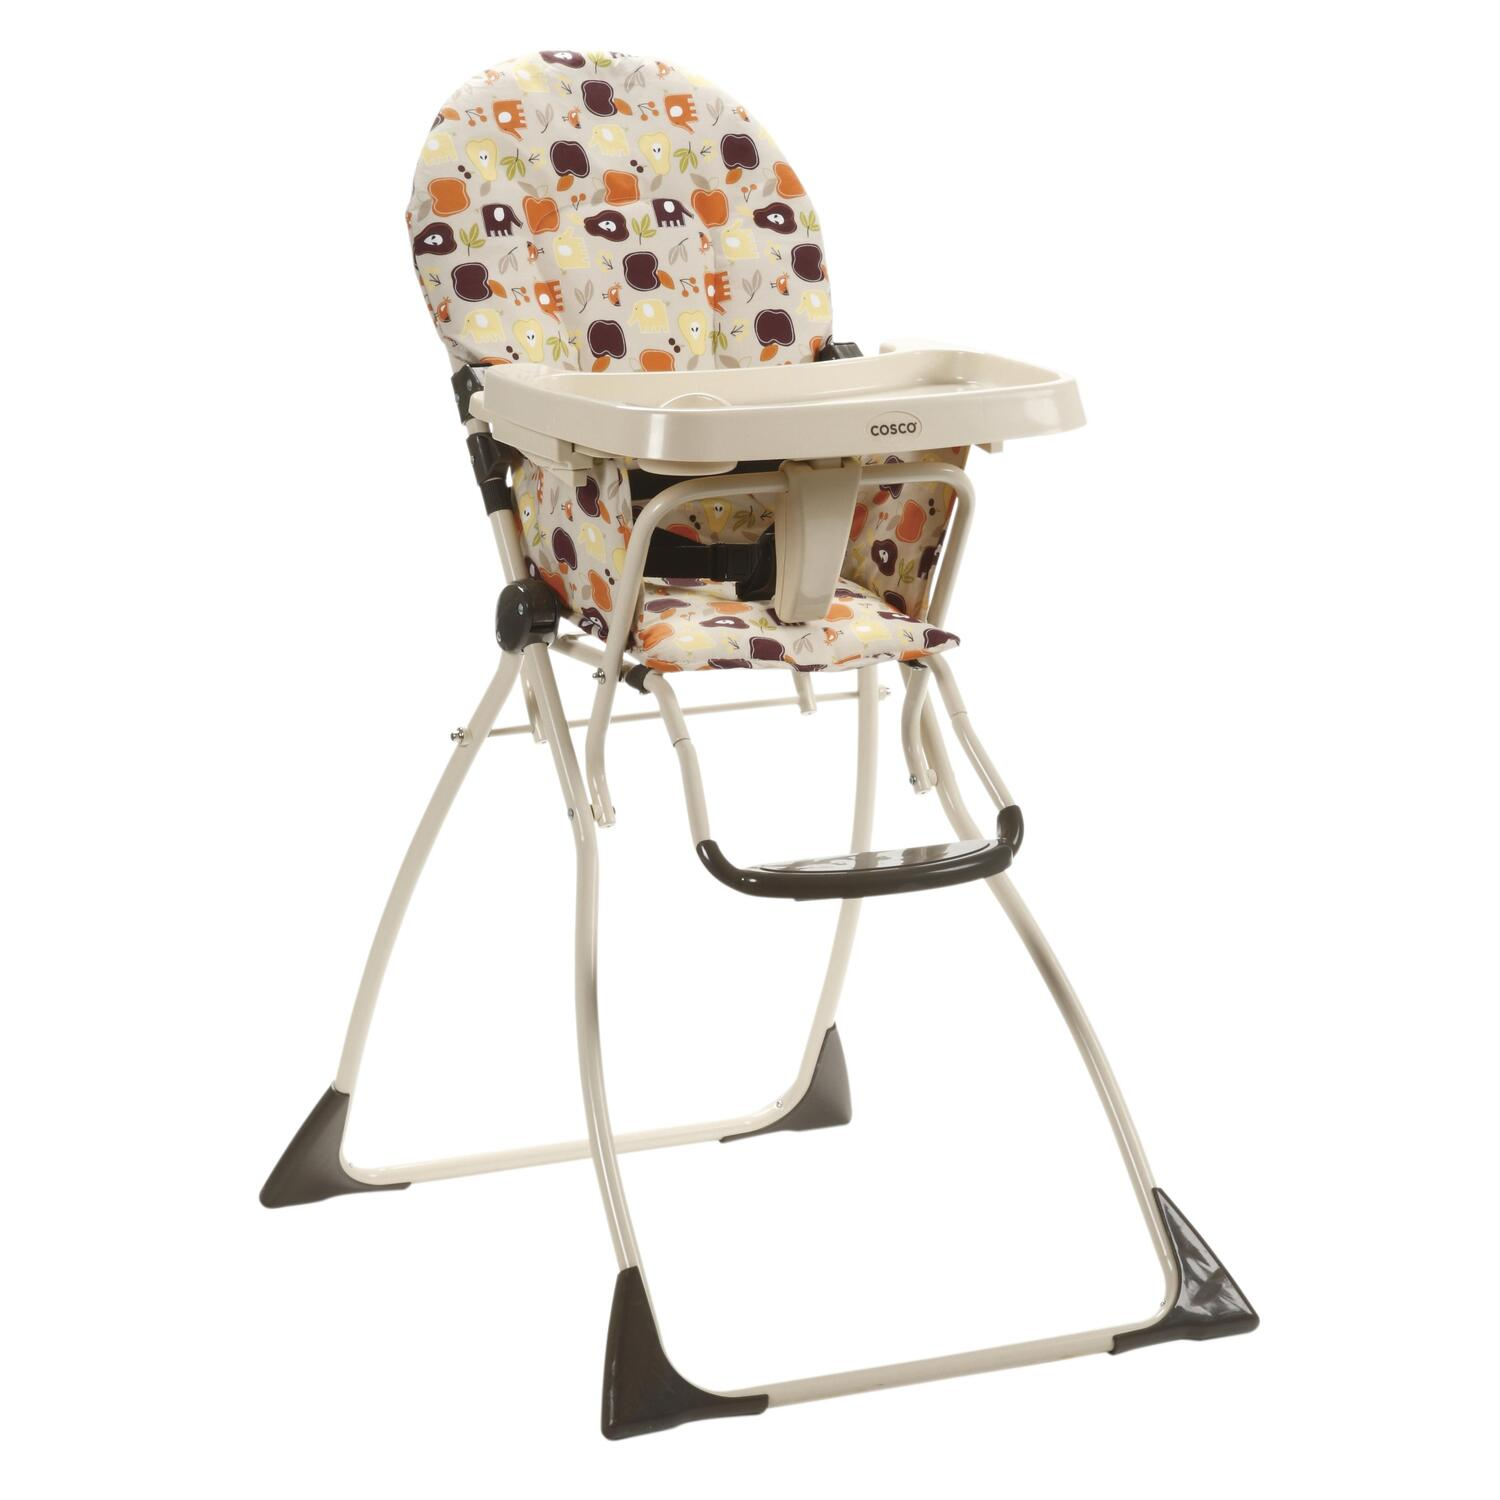 High Chair Stool Cosco Cosco Flat Fold High Chair Fruity Jungle By Oj